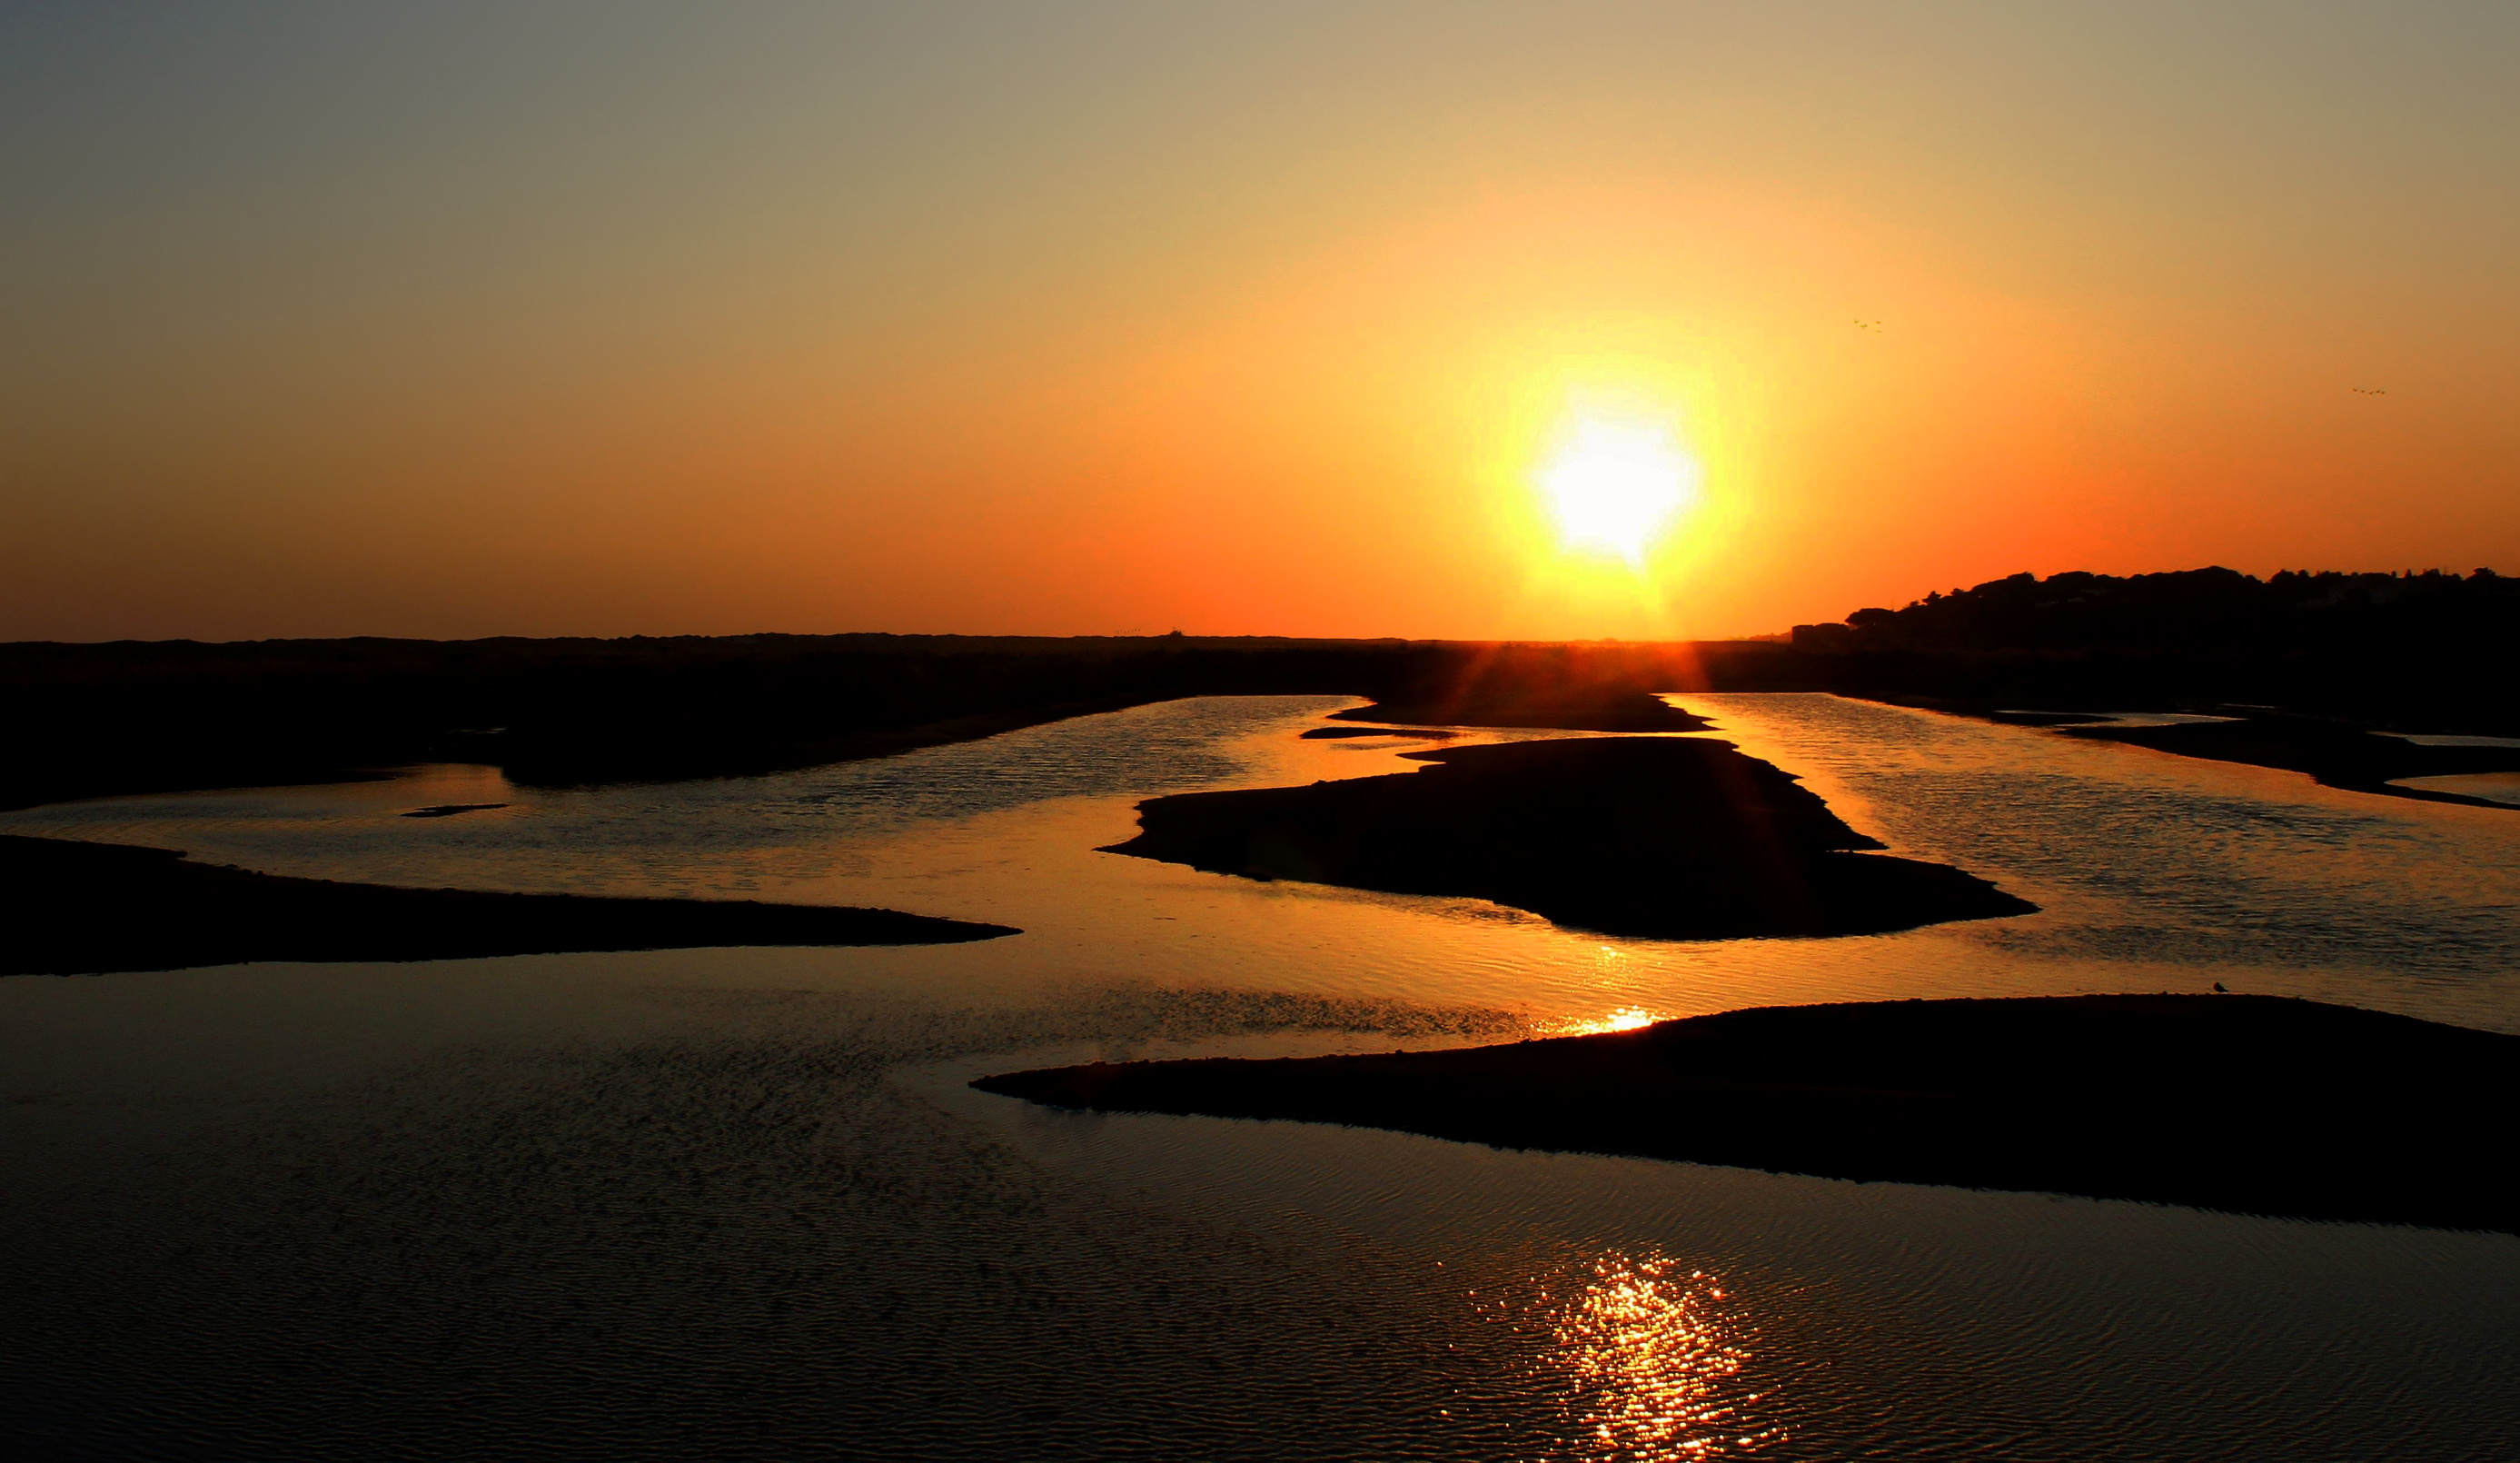 Sunset over the ria formosa natural park photo